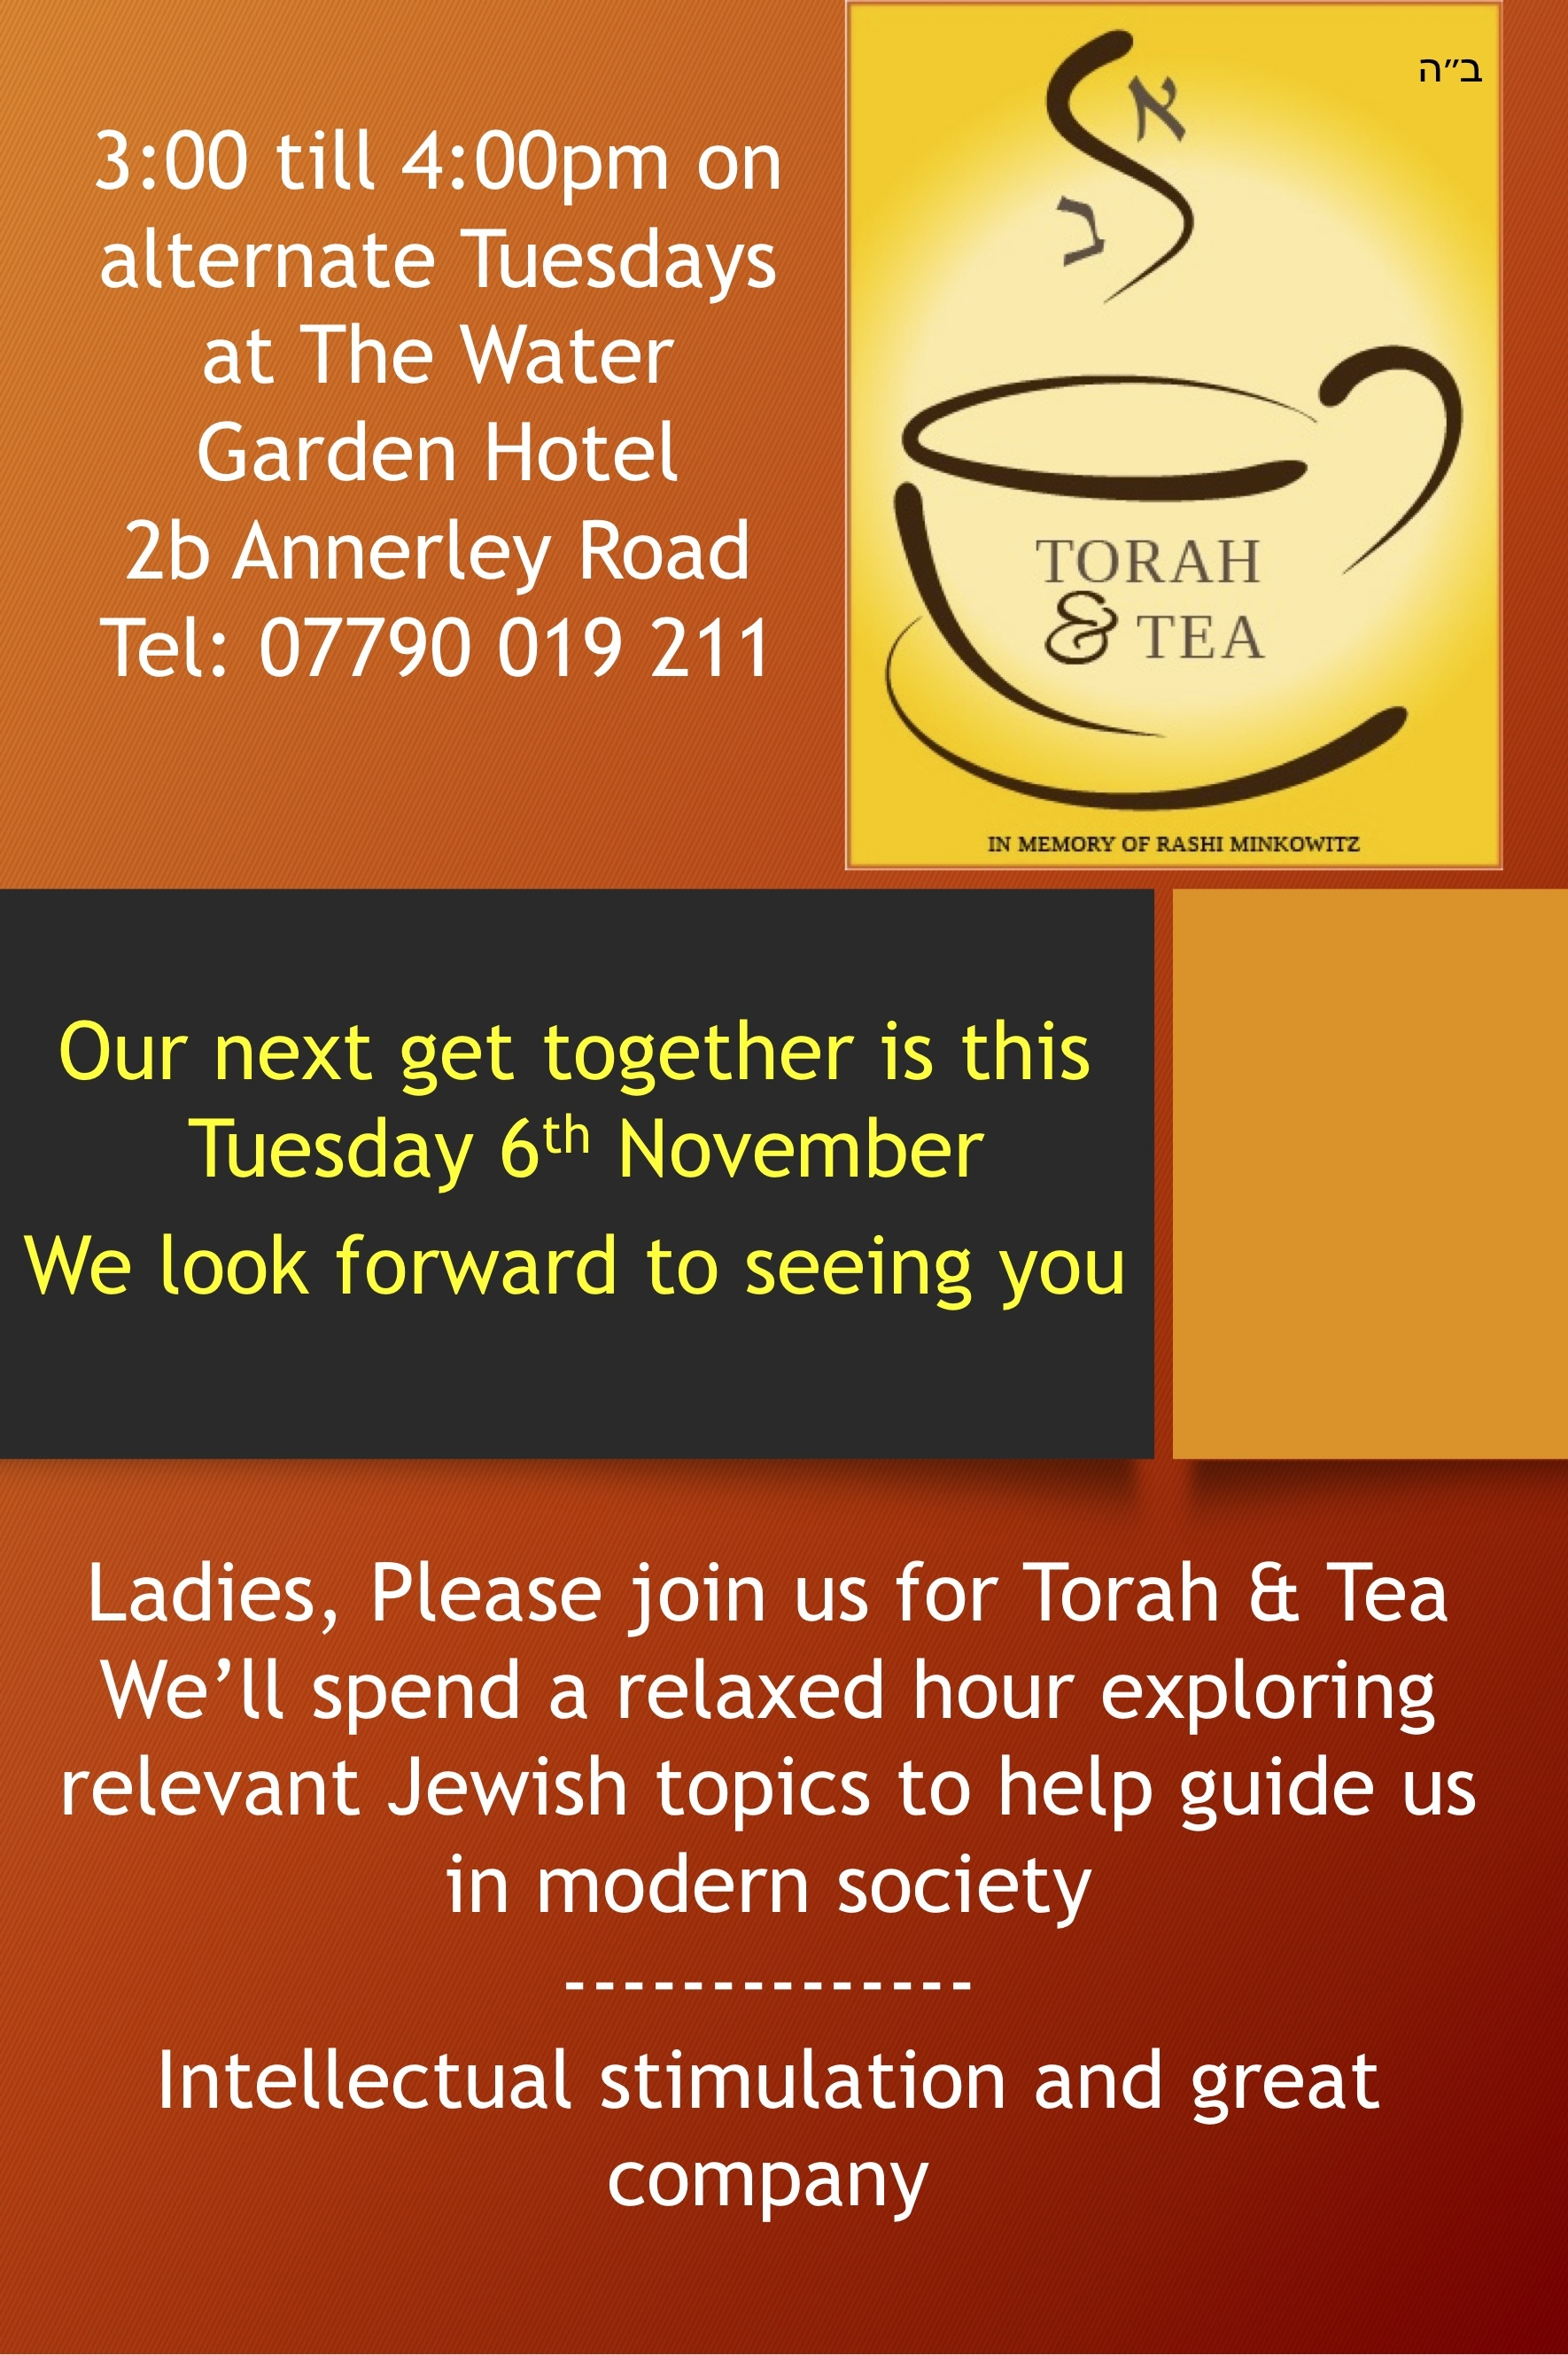 New Torah & Tea advert (v2) USE copy.jpg